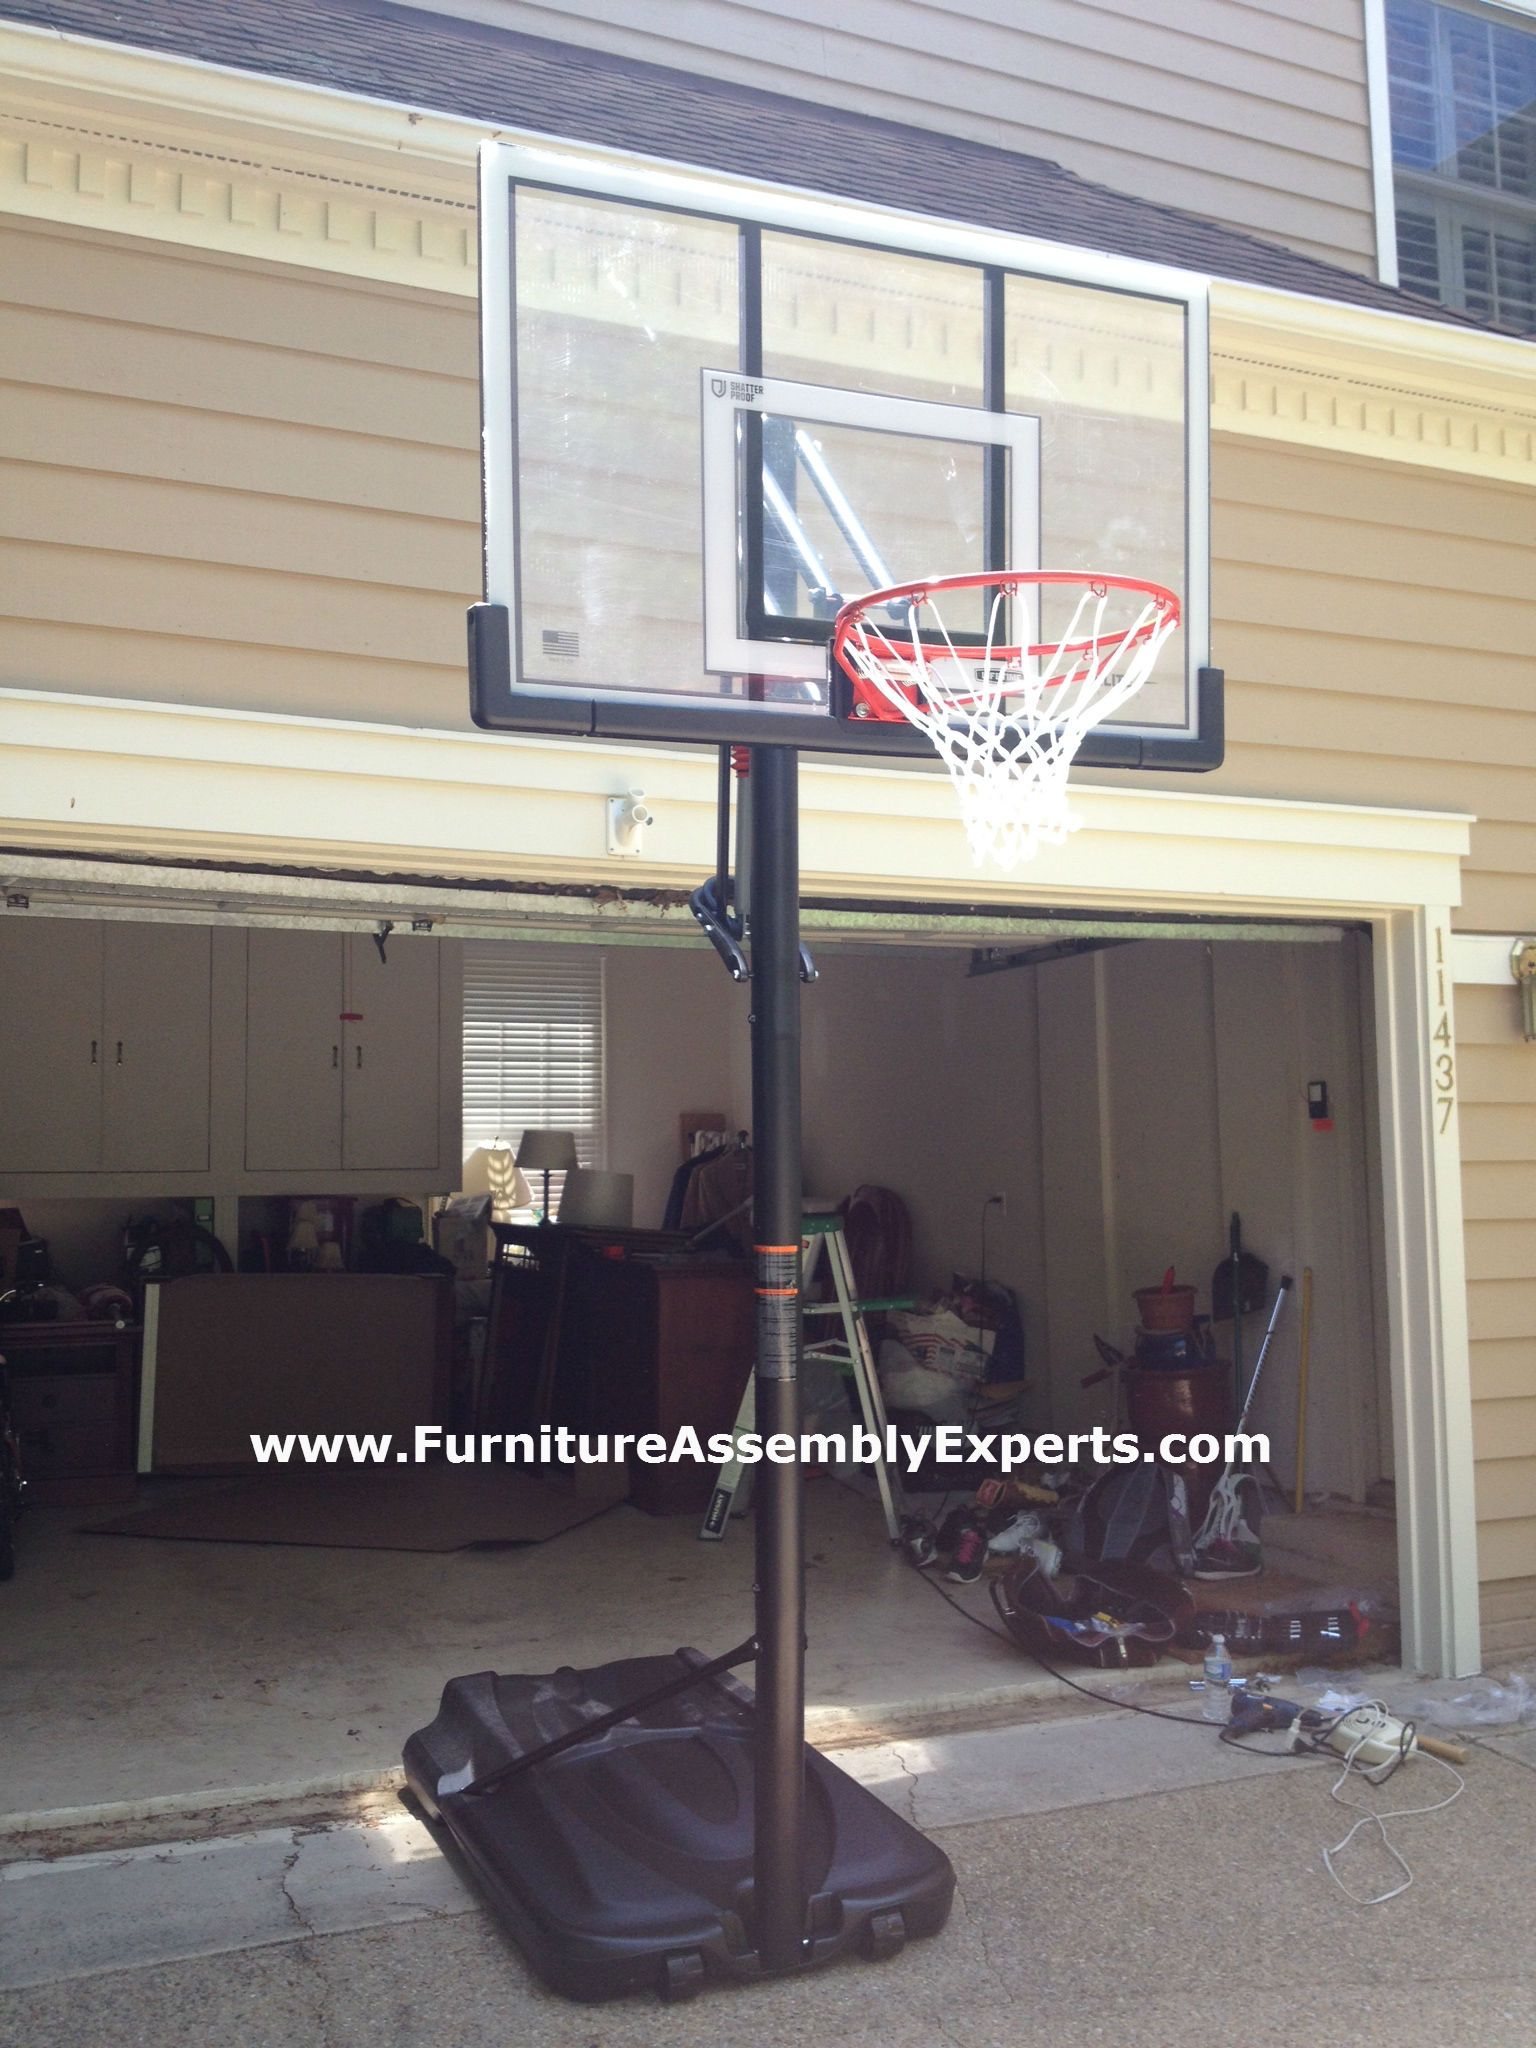 Amazon Lifetime Portable Basketball Hoop Assembled In Reston Va For A Customer By Furniture Assembly Expe Lifetime Basketball Hoop Furniture Assembly Floor Fan